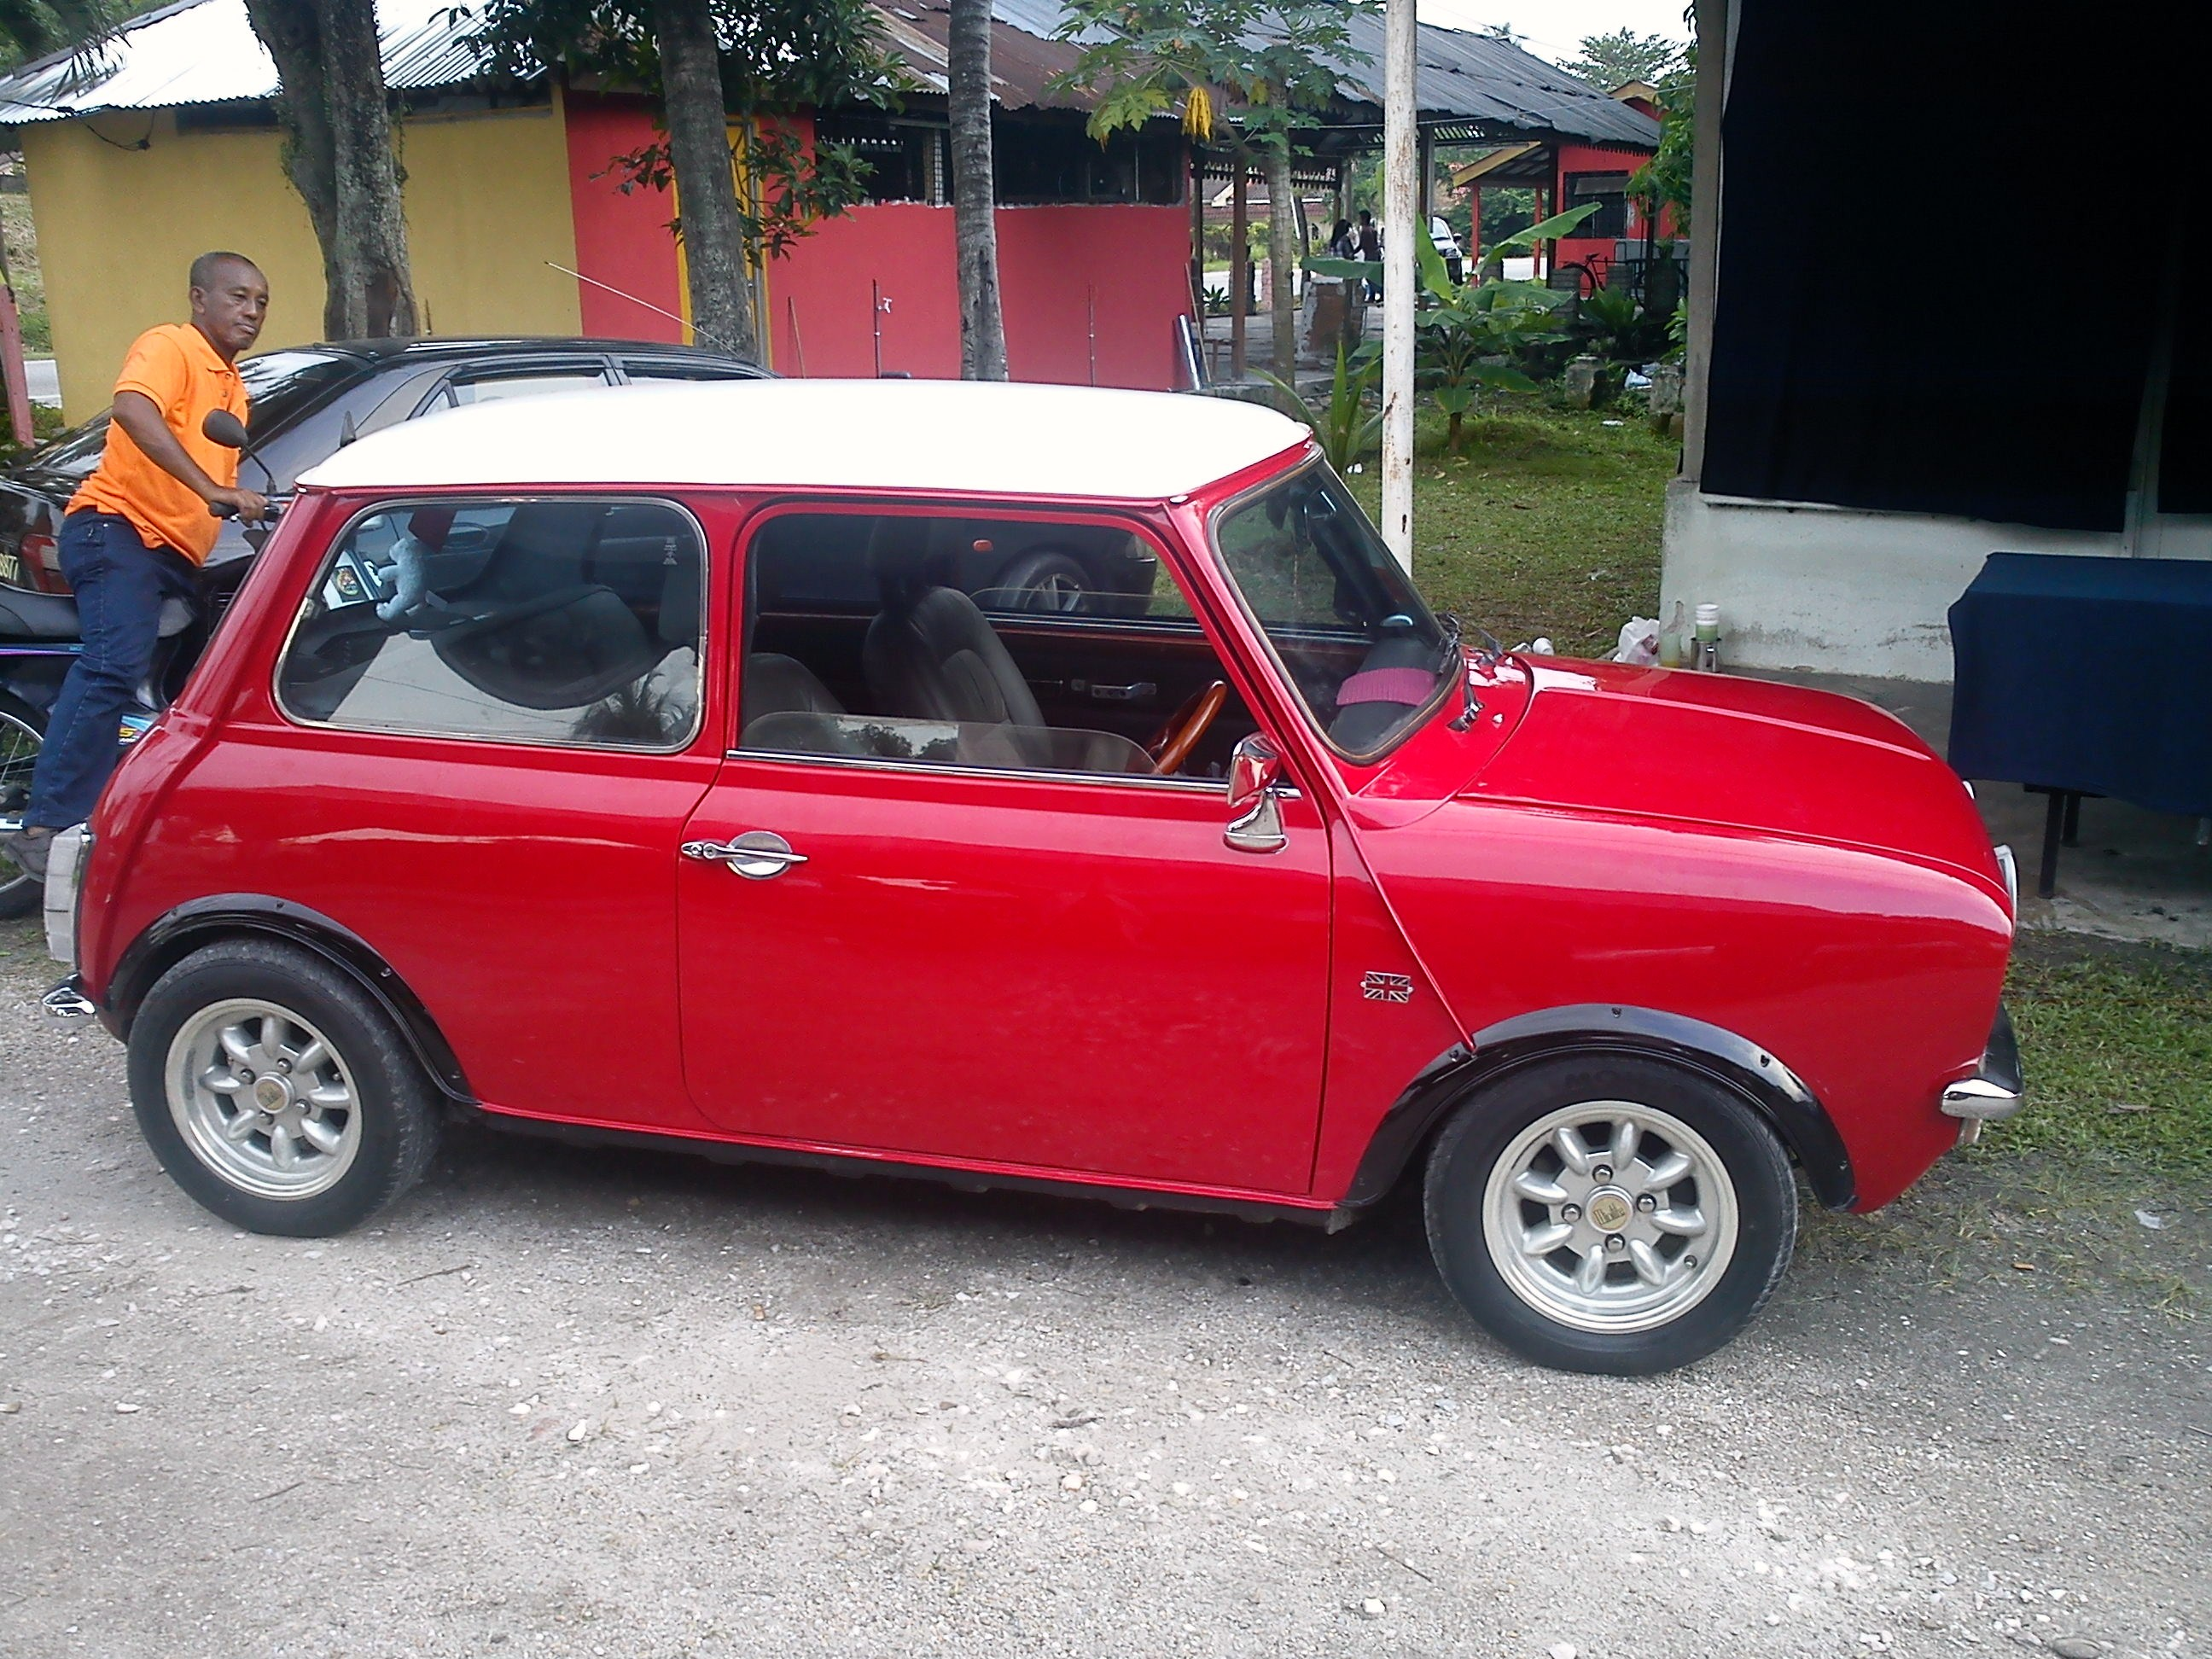 mini clubman related images,301 to 350 - Zuoda Images